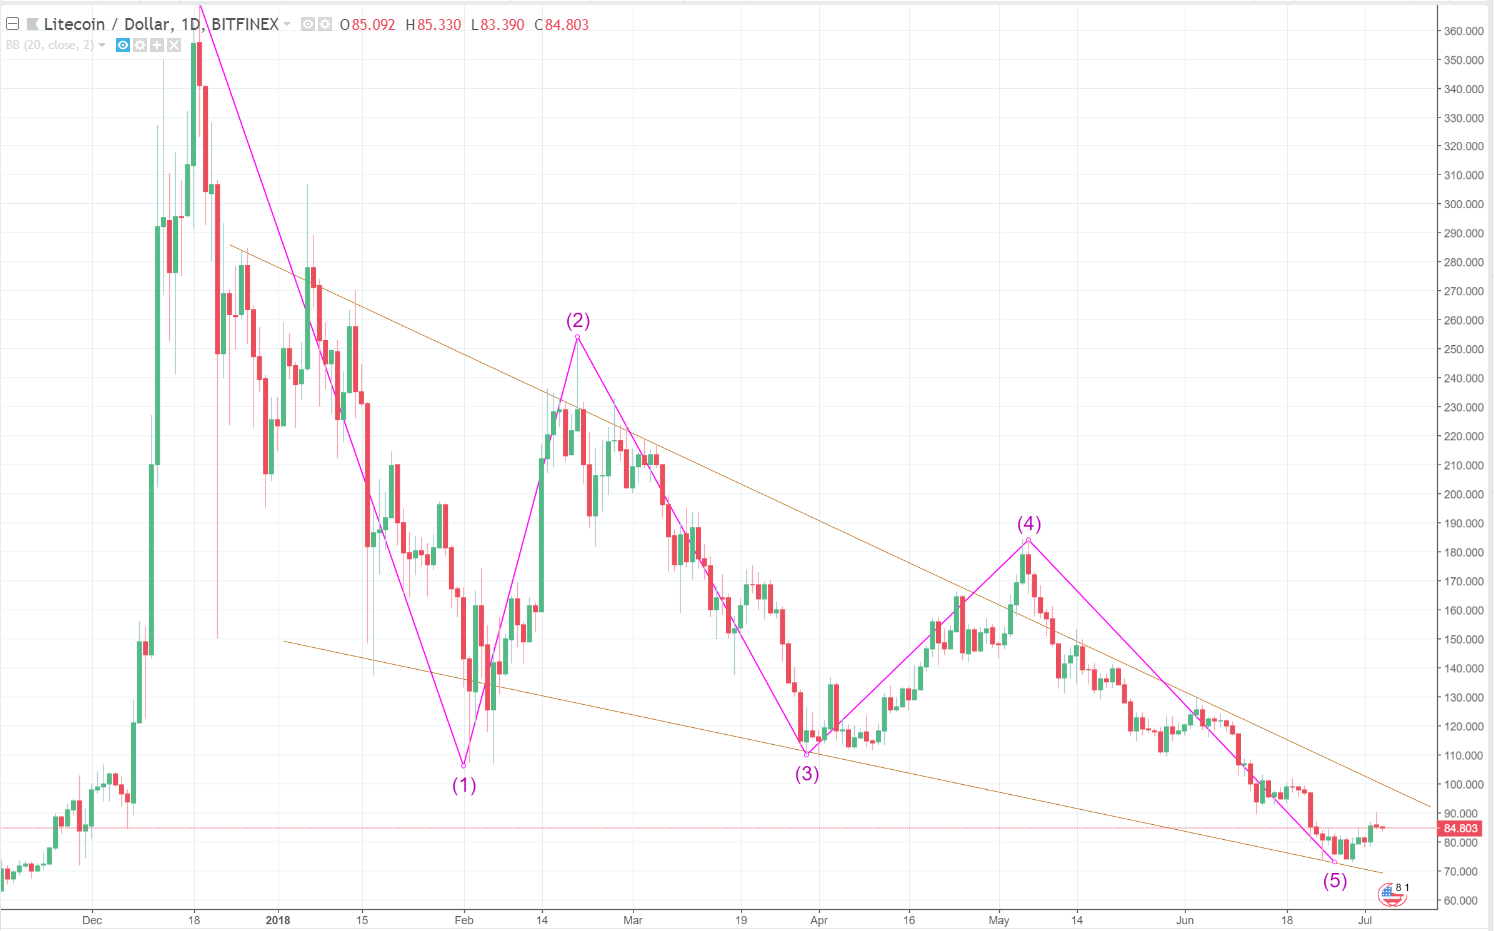 Litecoin price, Litecoin price analysis, Litecoin price forecast, USD, cryptocurrency, top 10 crypto price, major cryptocurrency